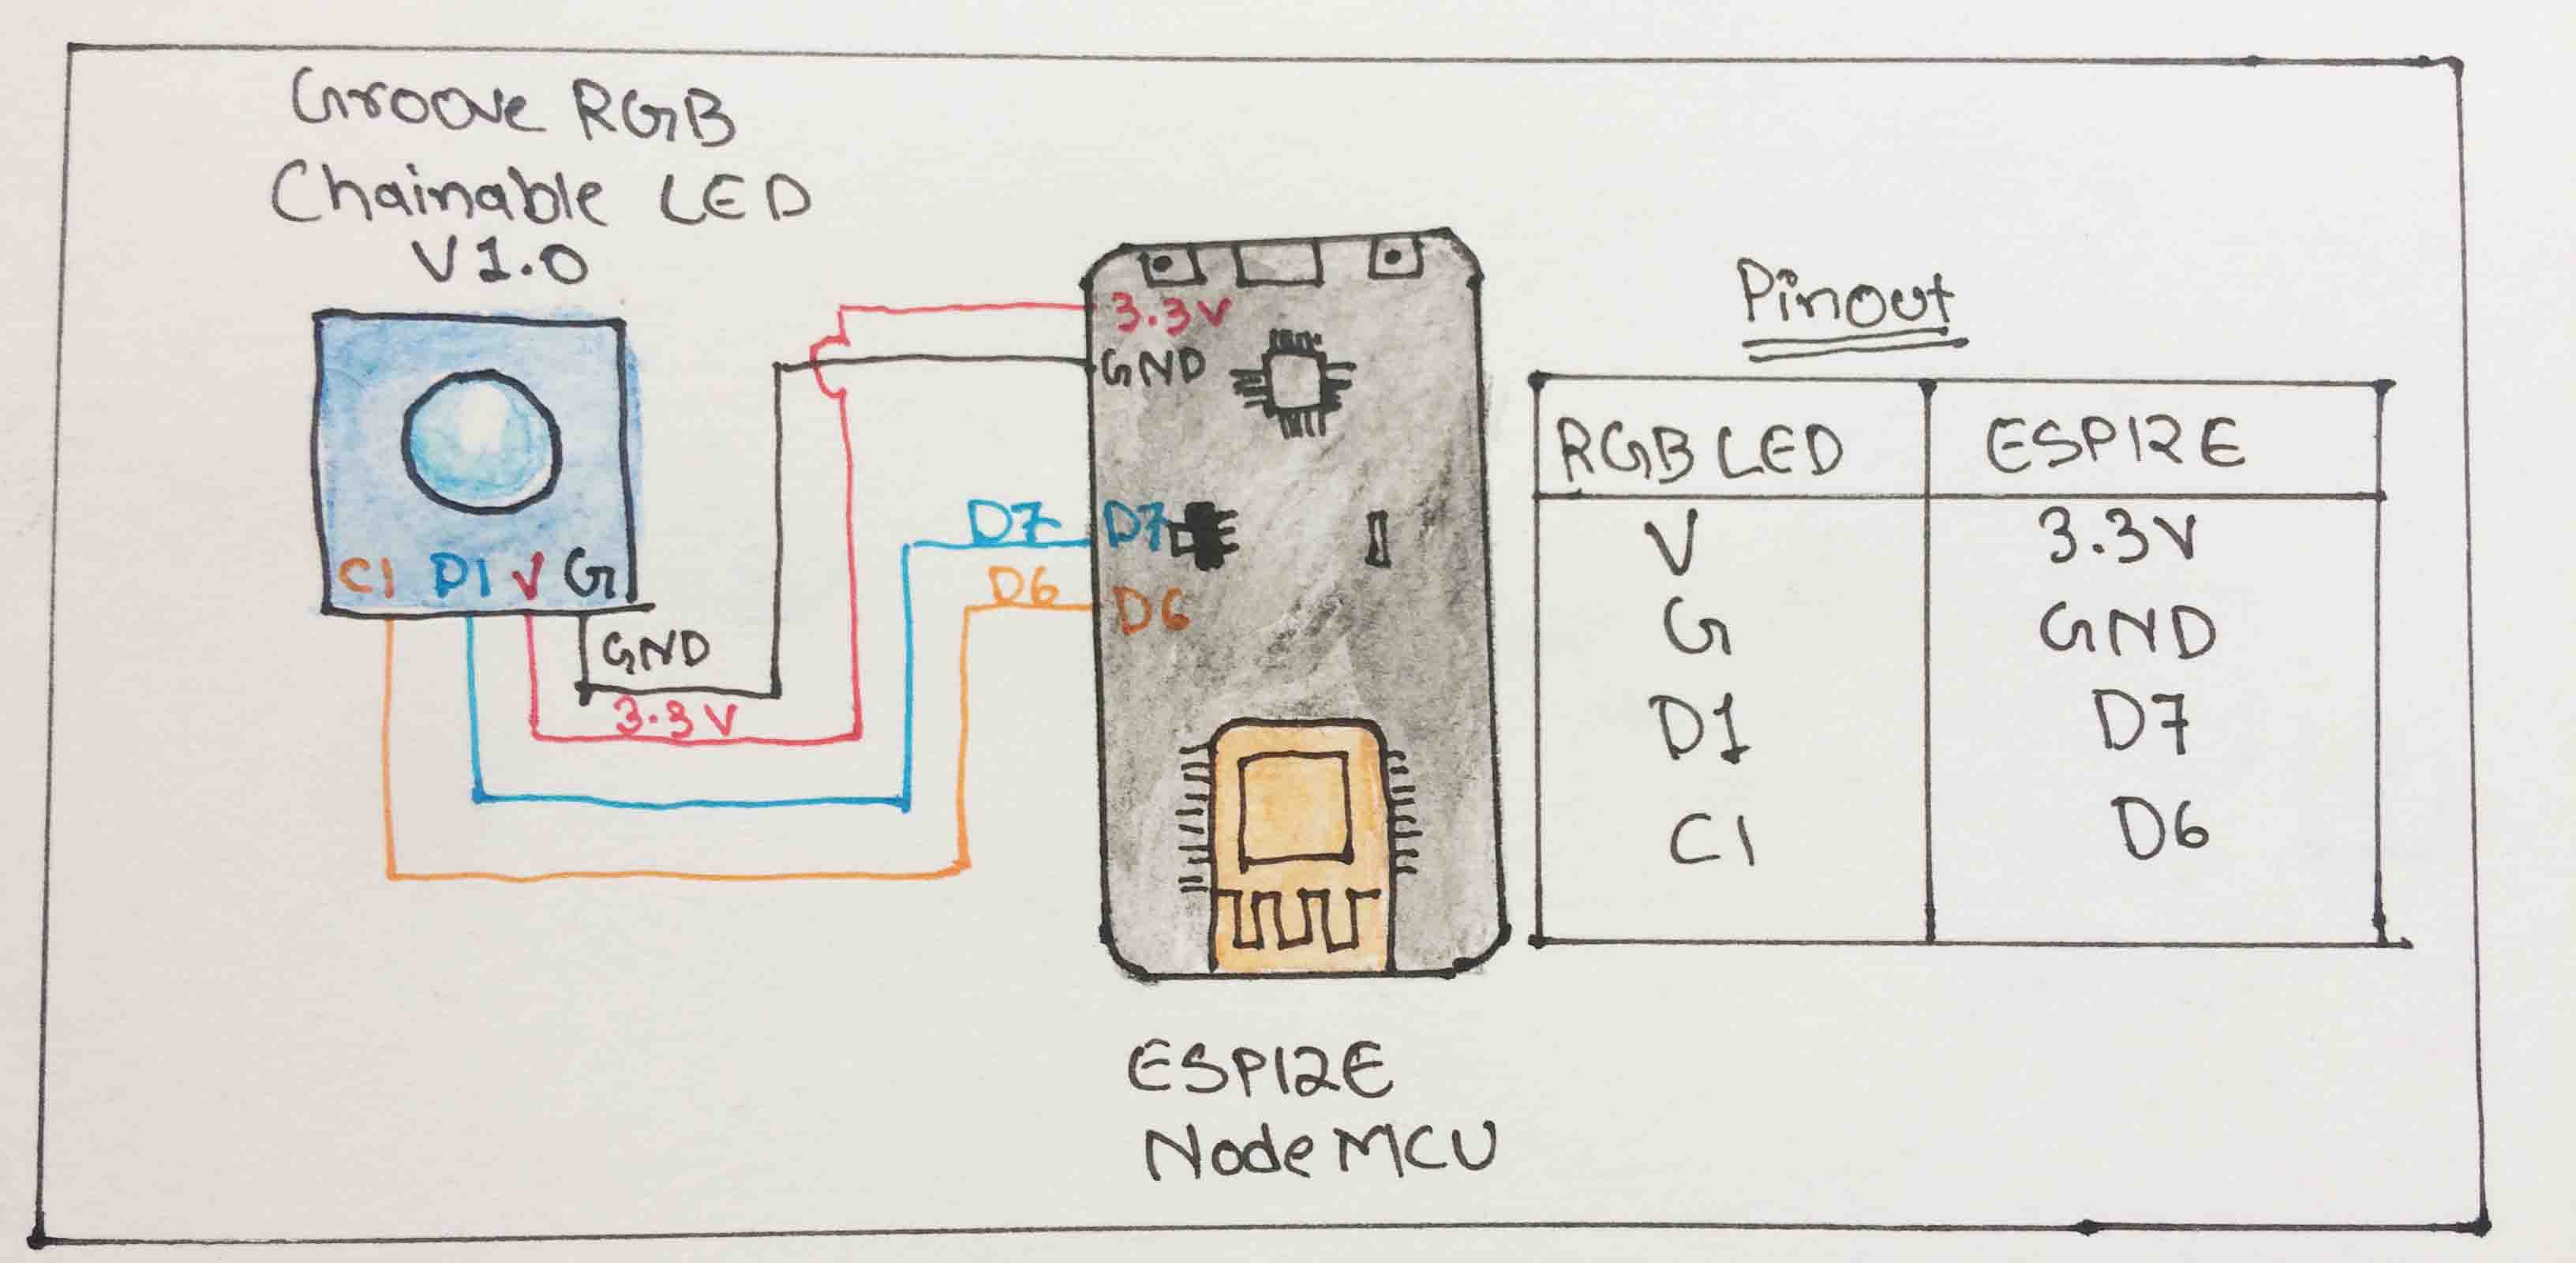 Change Rgb Led Connected To Esp12e From Web Page Using Knob Circuit Diagram Breadboard Isgjcrcmf4